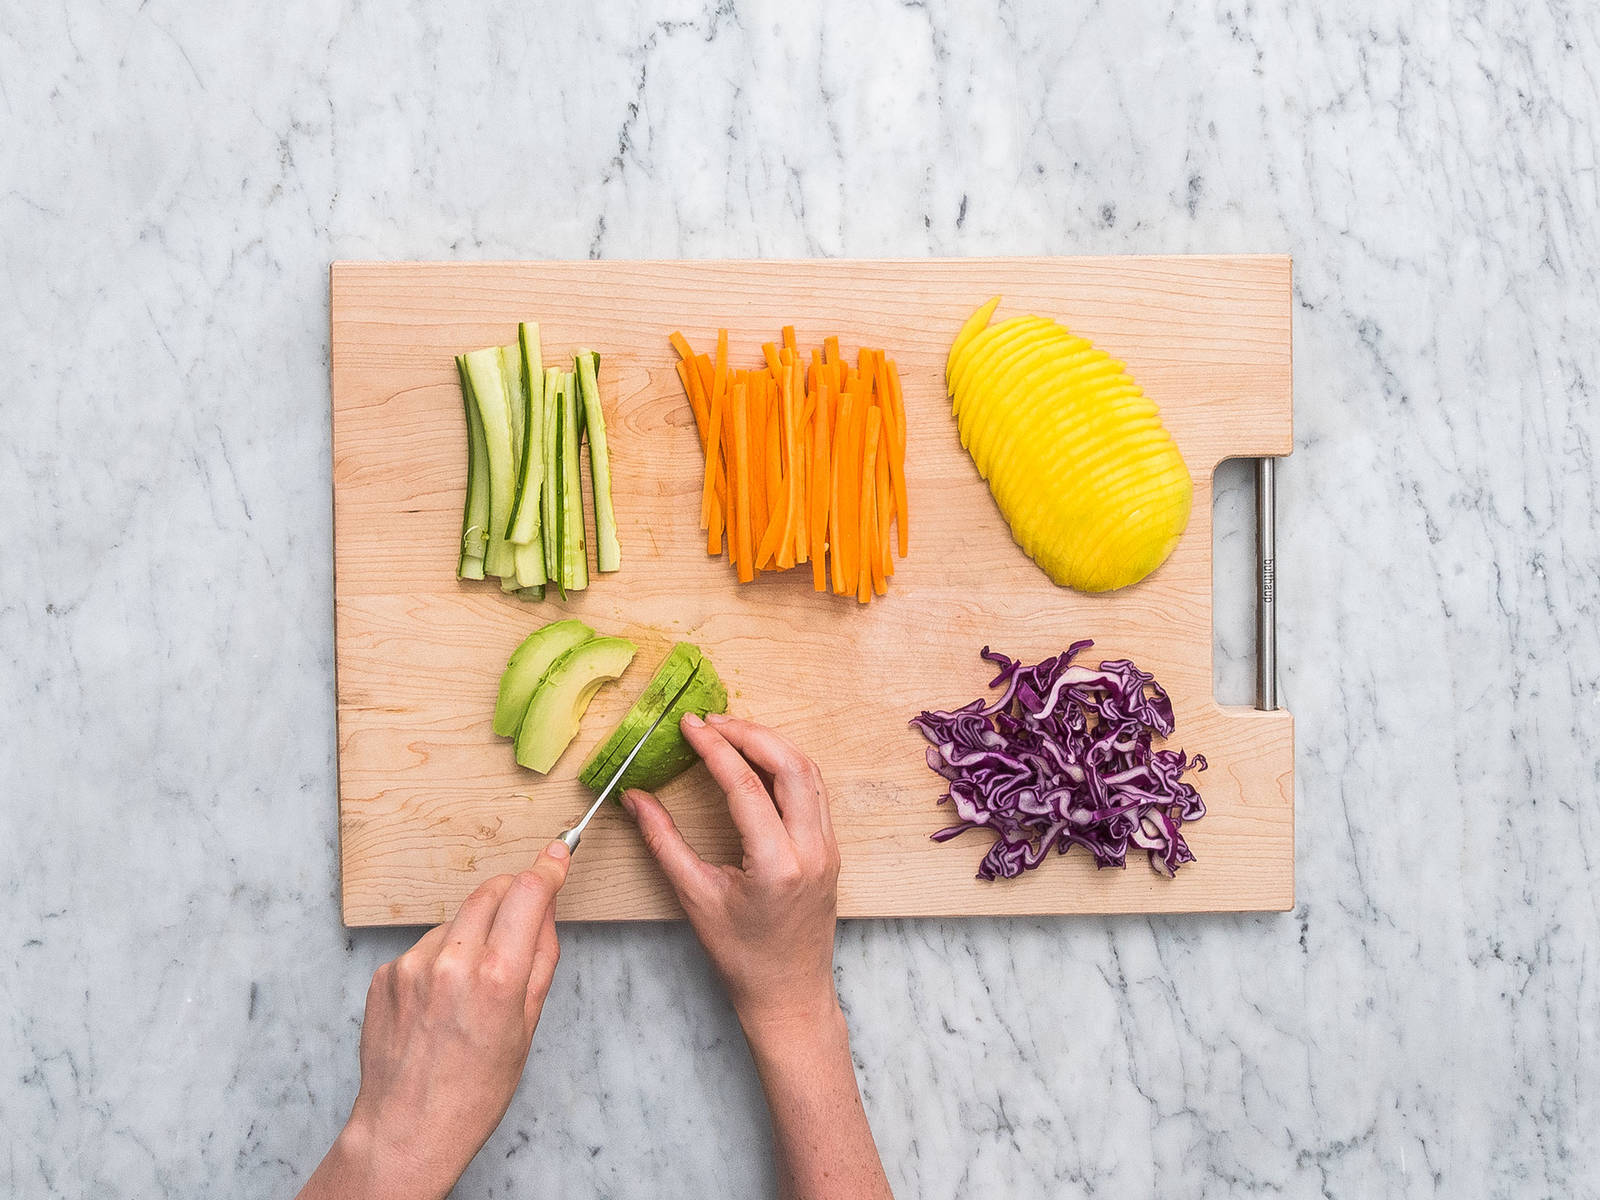 Peel and slice the carrots, and chop the cucumber and red cabbage into fine matchsticks. Finely slice mango, radish and avocado. Cut the cress.